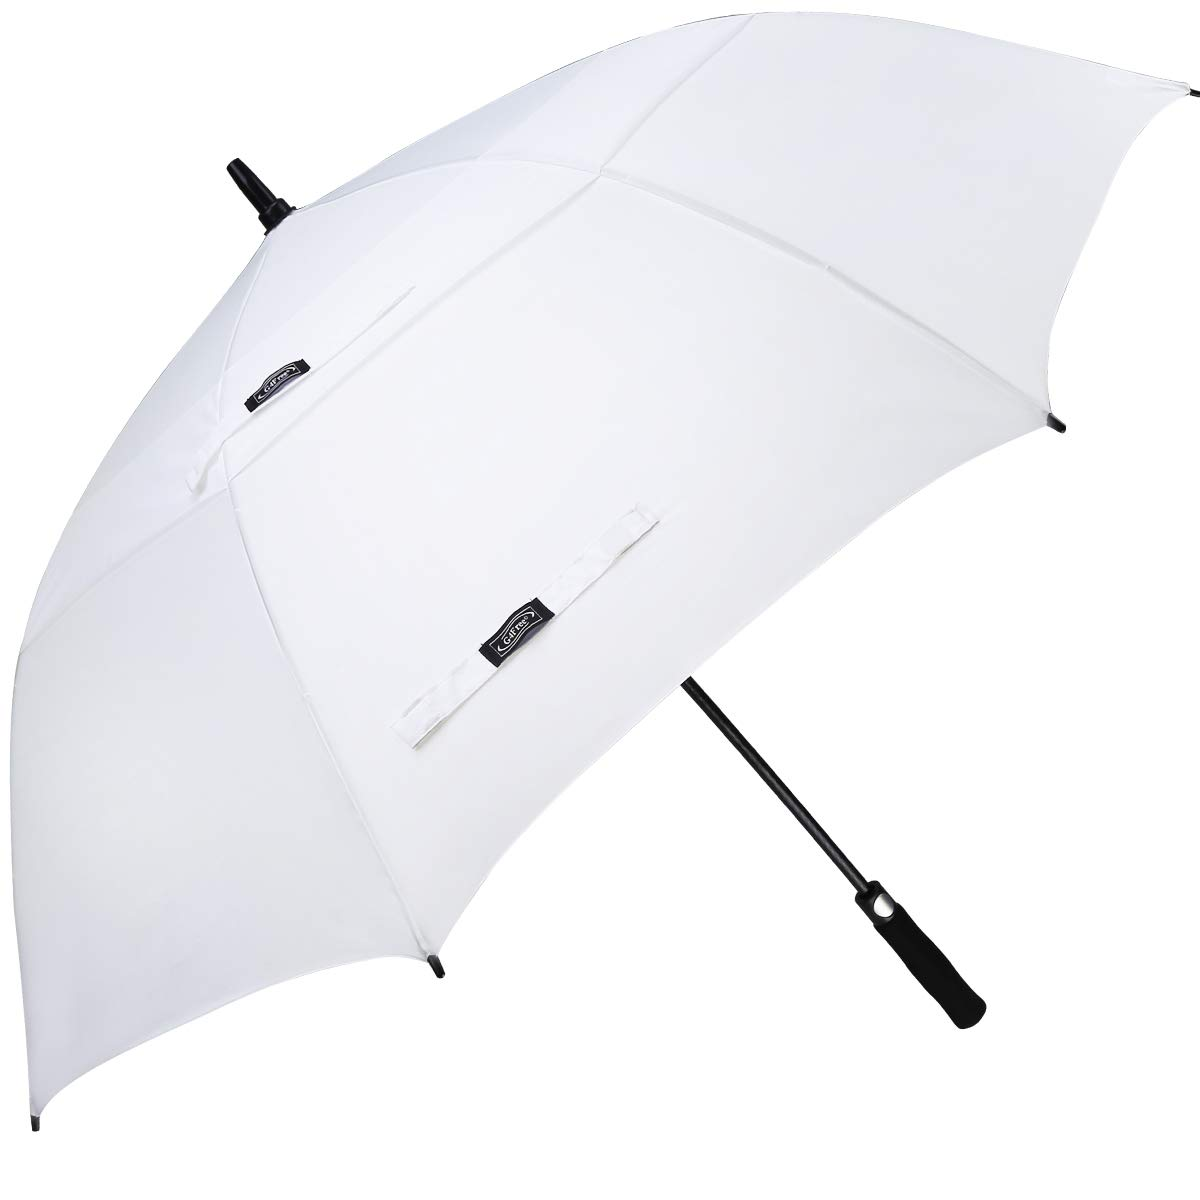 G4Free Golf Umbrella Extra Large 54 Inch Windproof Oversize Automatic Double Canopy Vented Waterproof Stick Umbrellas (White) by G4Free